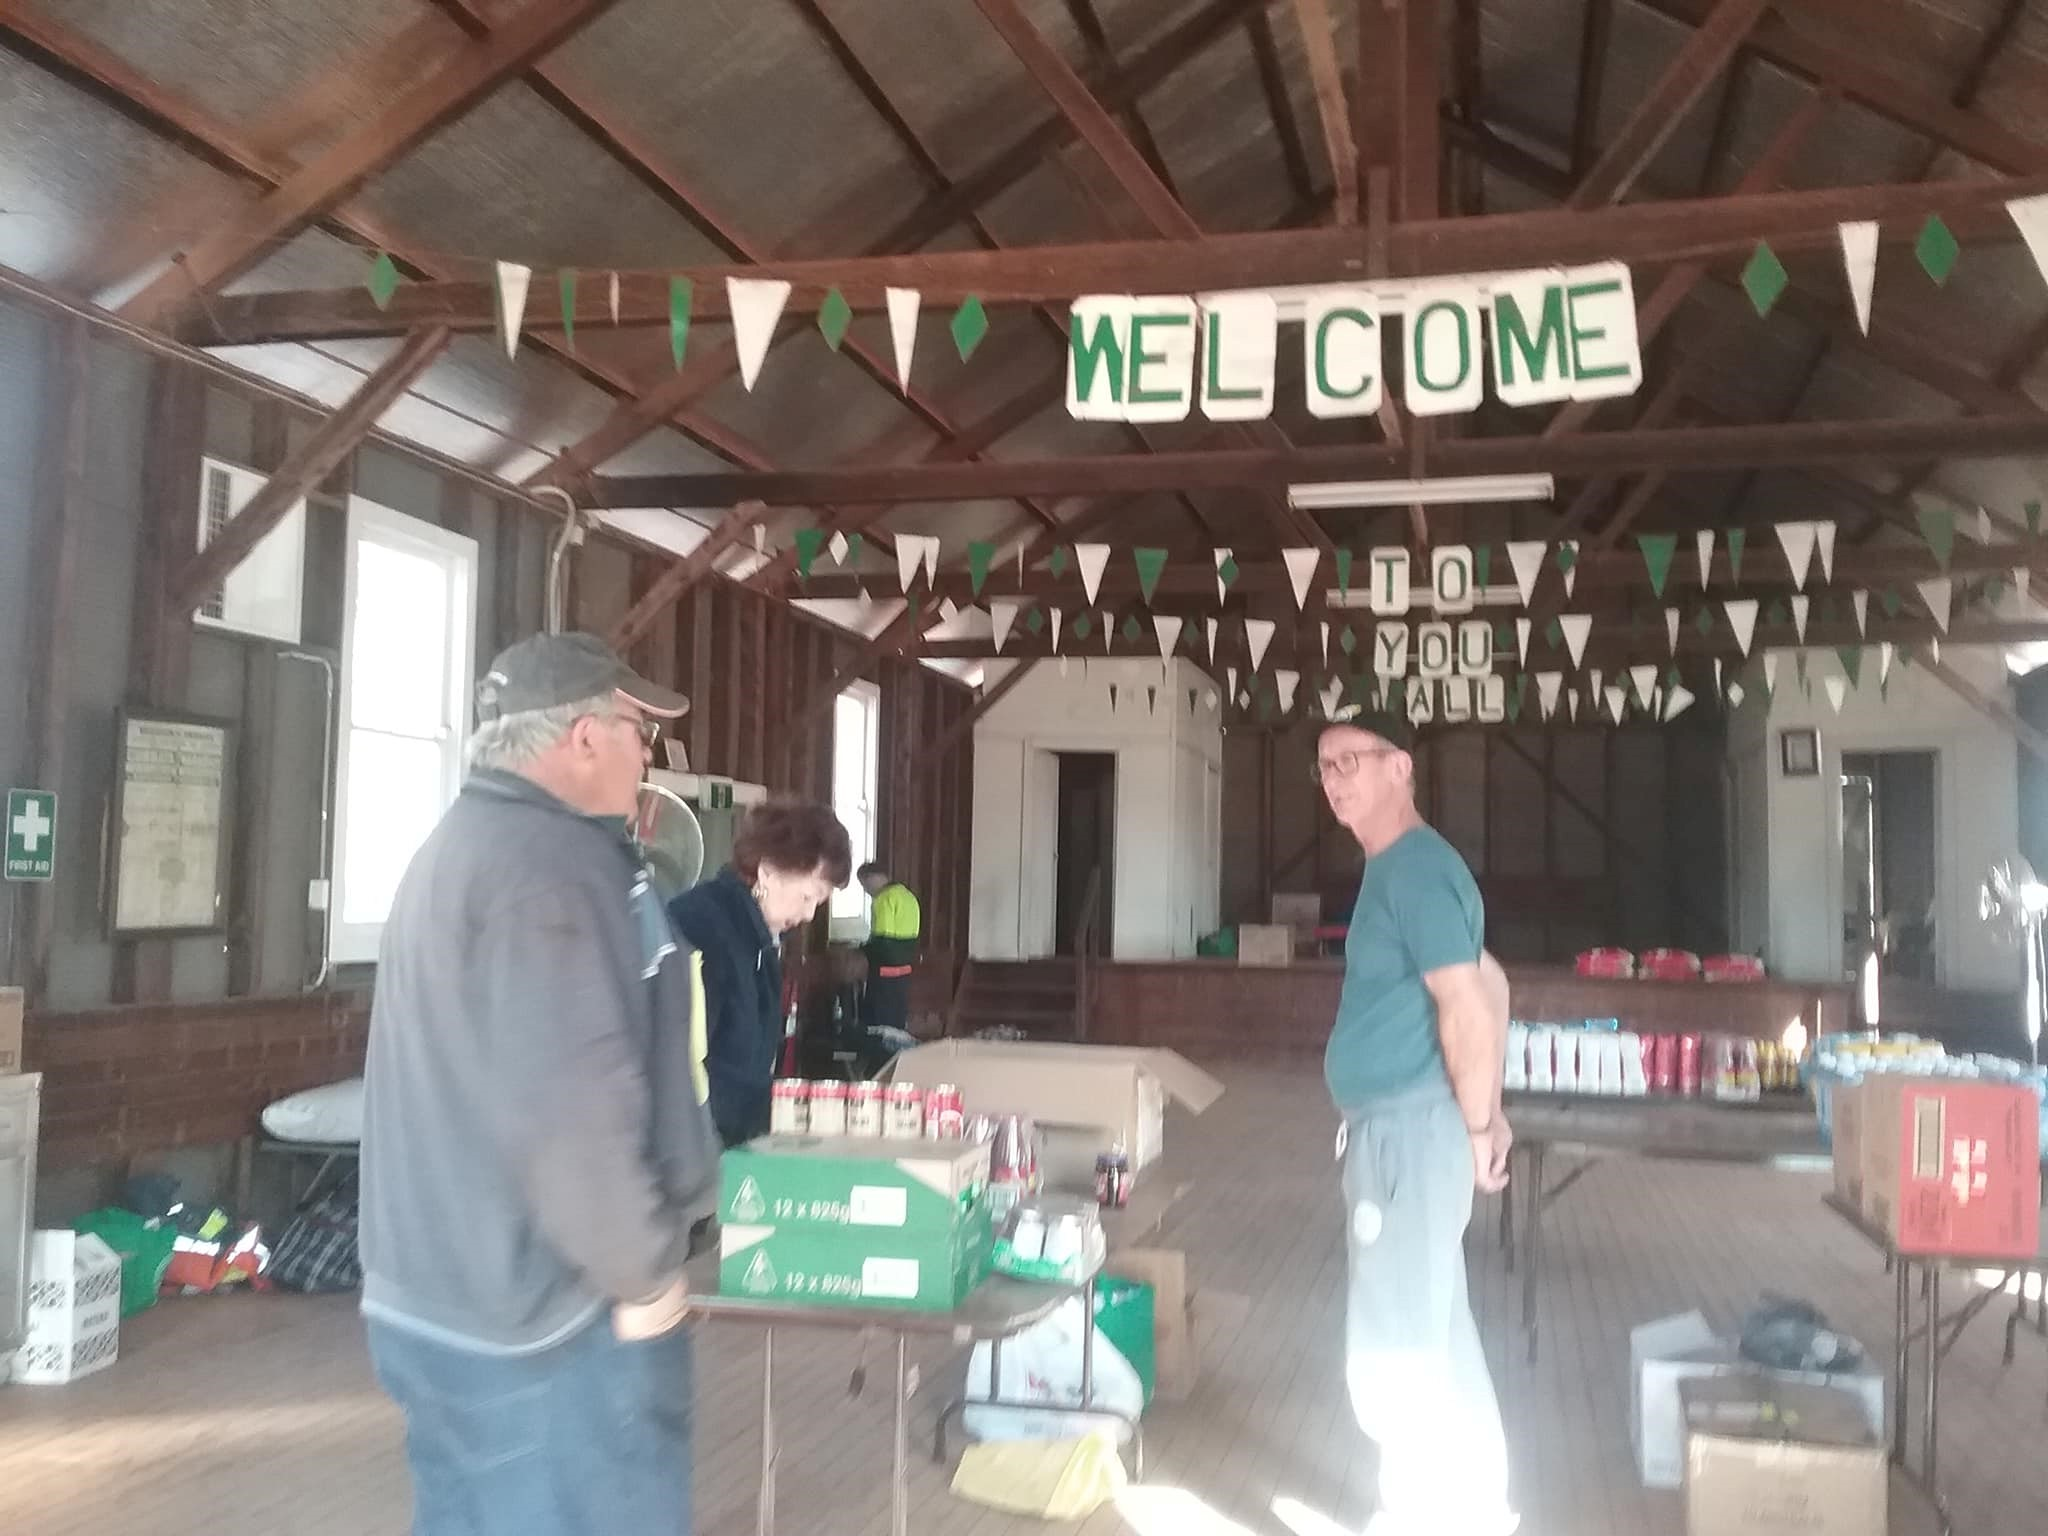 Community Hall filled with groceries